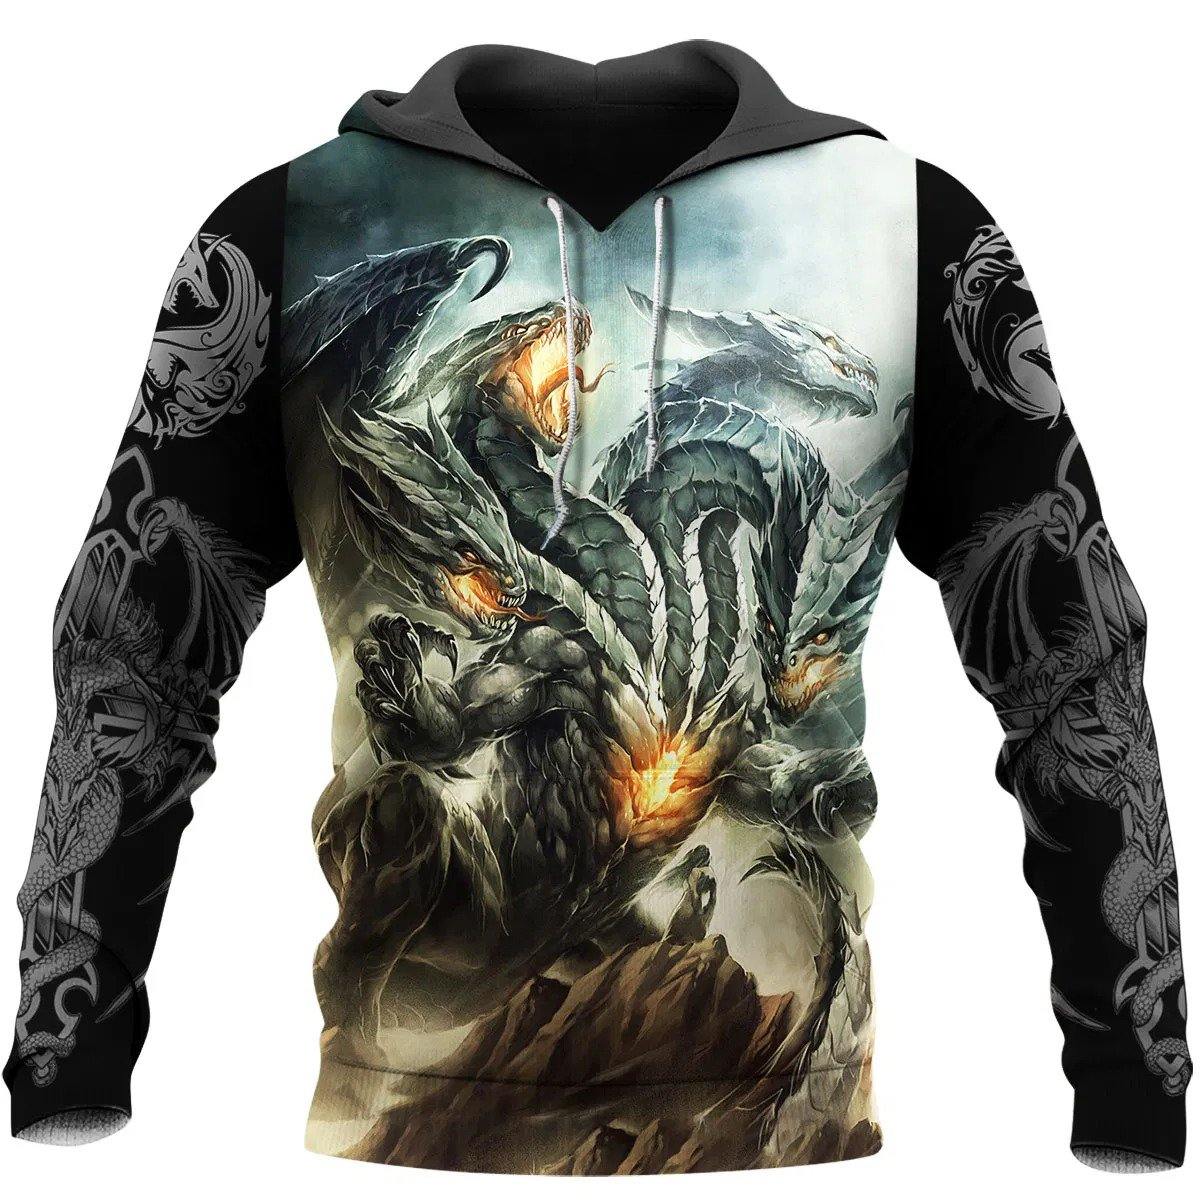 Dragon 3D All Over Printed Hoodie AM220604